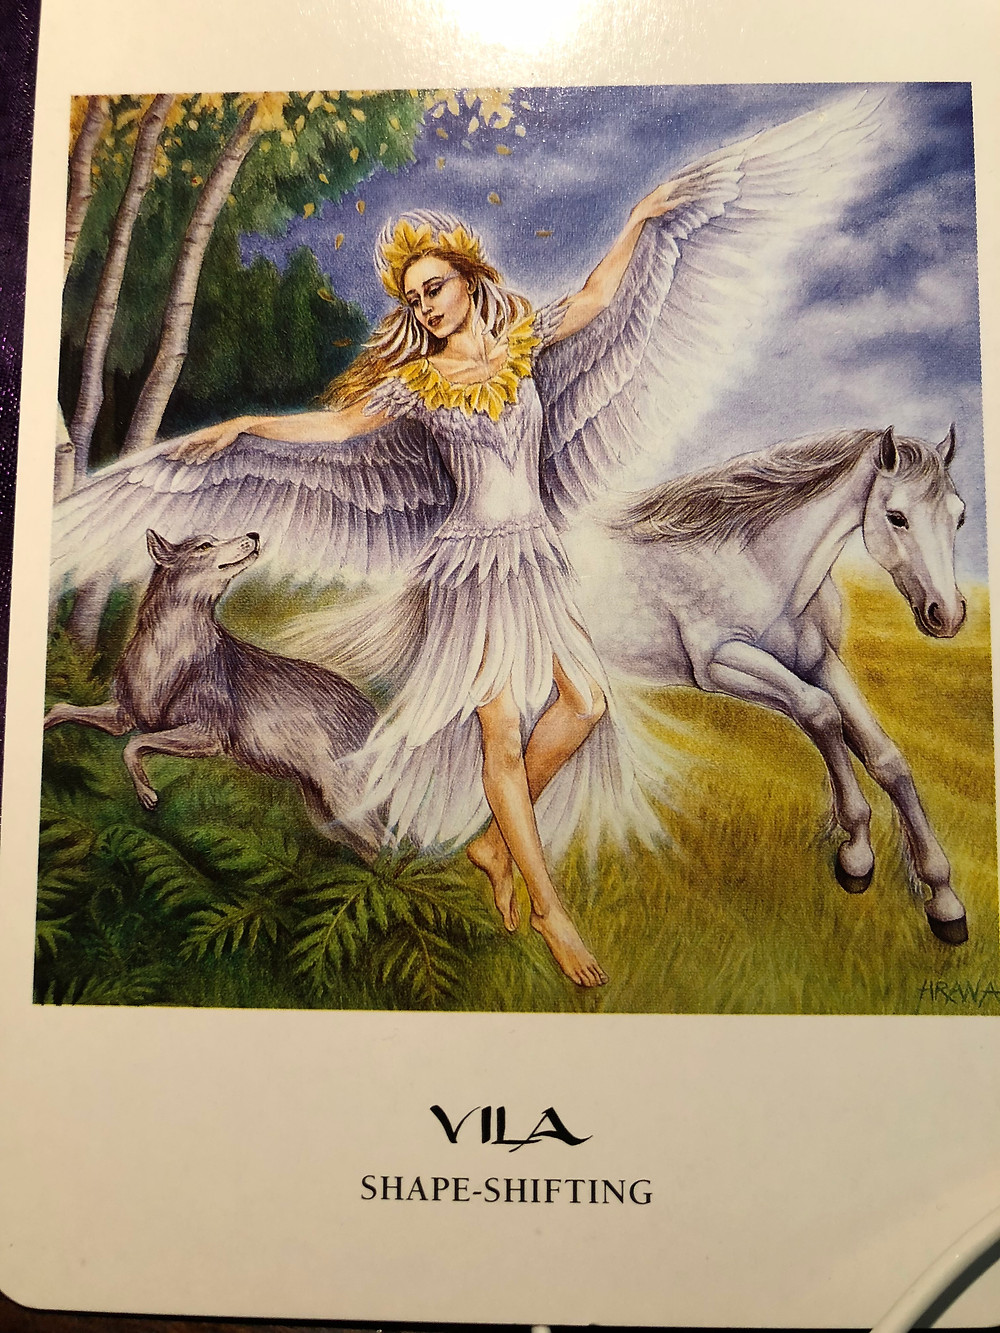 Vila Card - winged goddess - from The Goddess Oracle